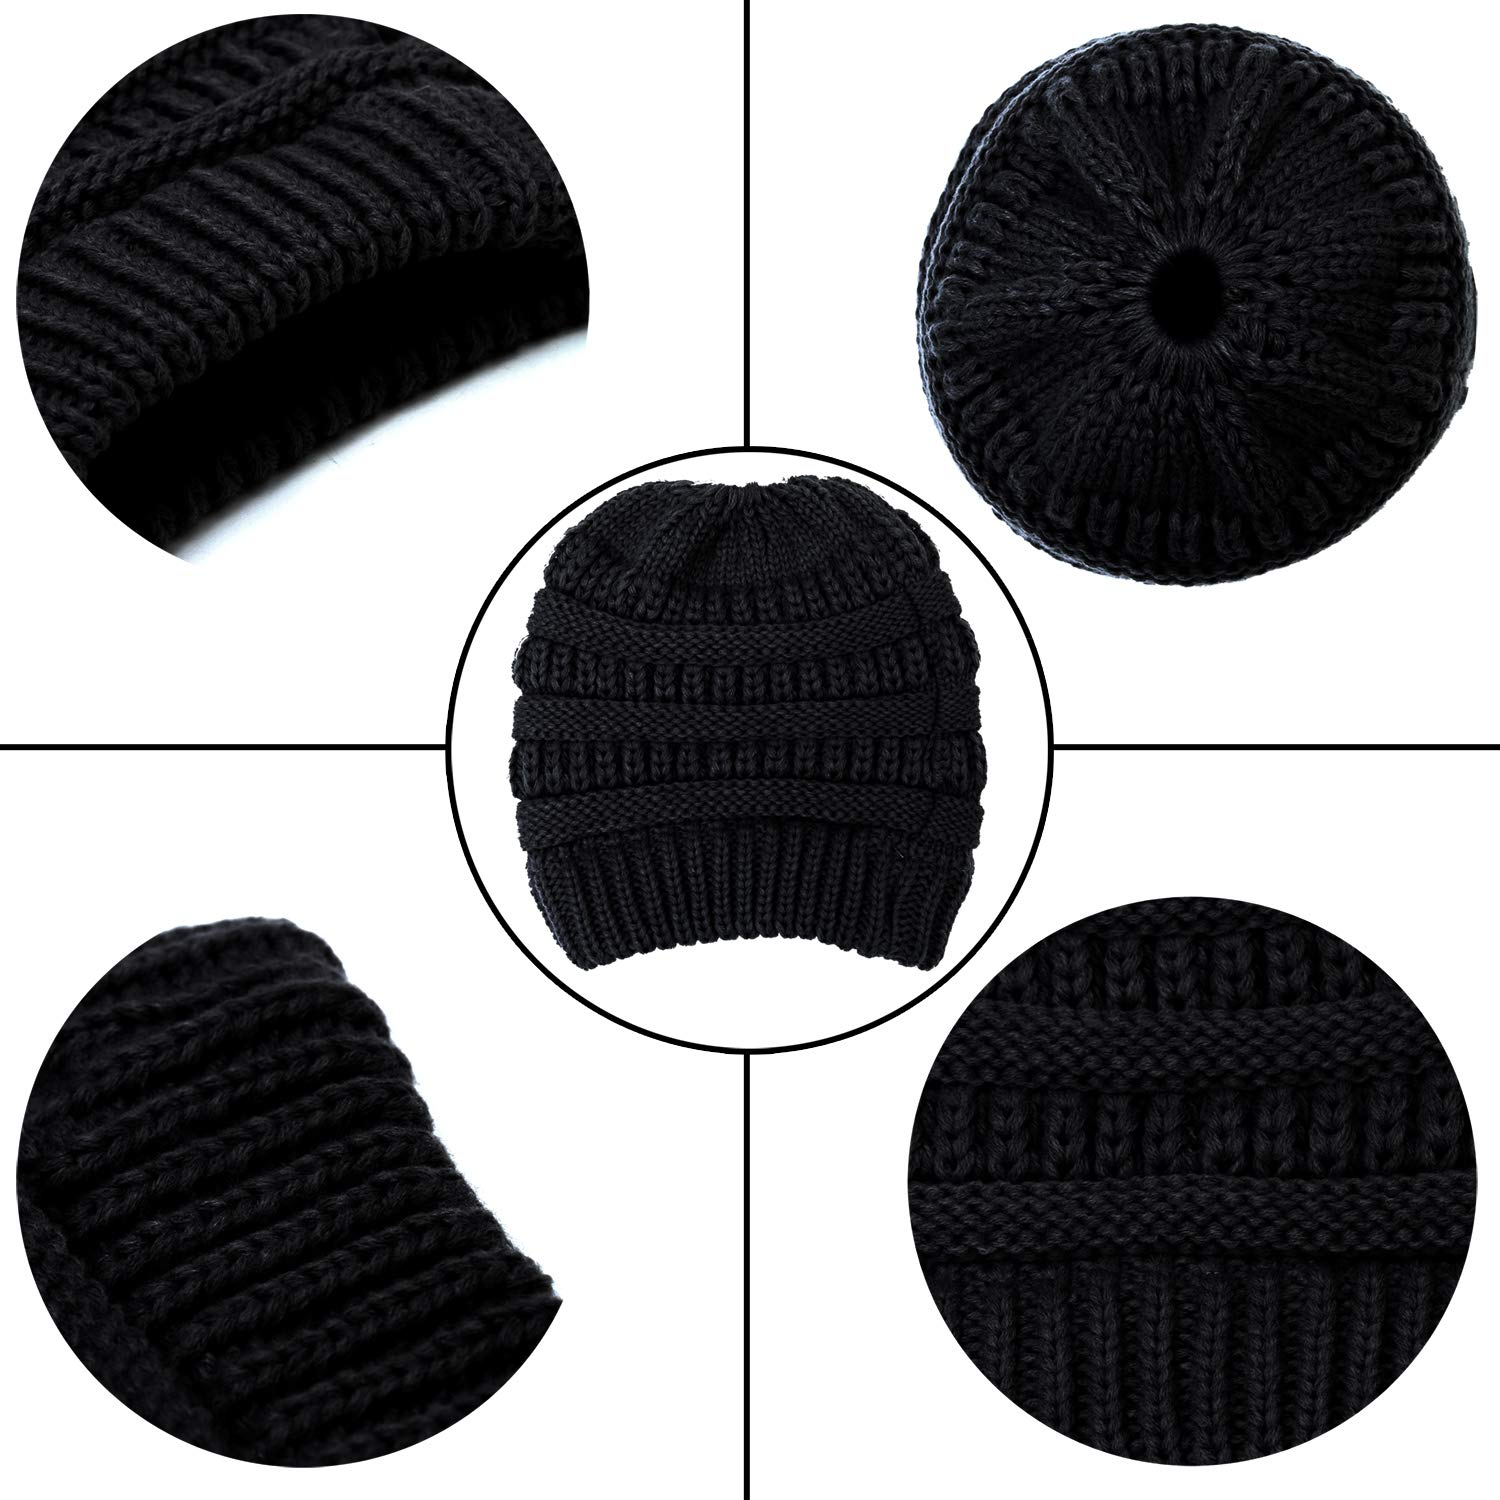 Aneco Winter Warm Beanie Knitted Beanie Hat And Gloves Set Set di Sciarpe e Guanti per Uomo e Donna